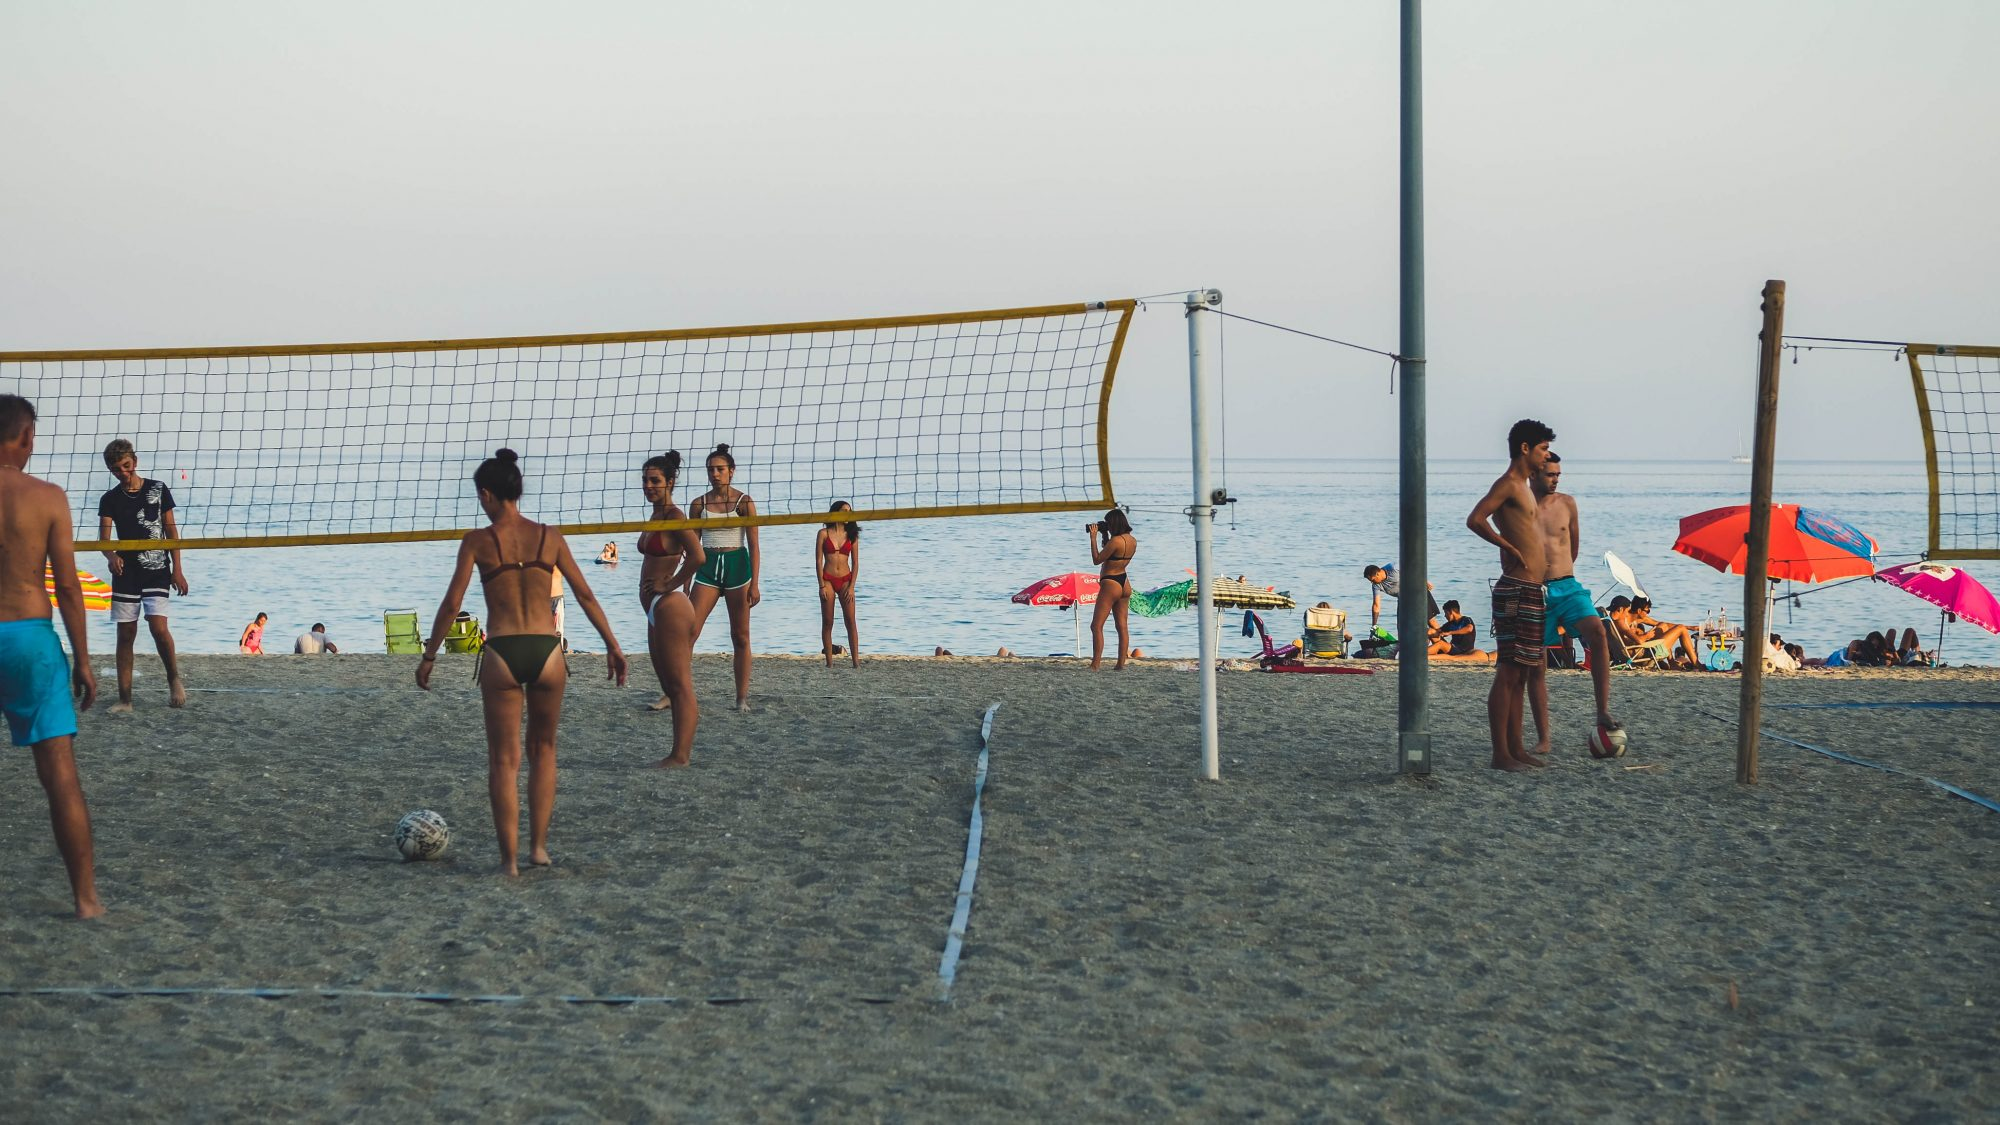 Une partie de beach volley ?